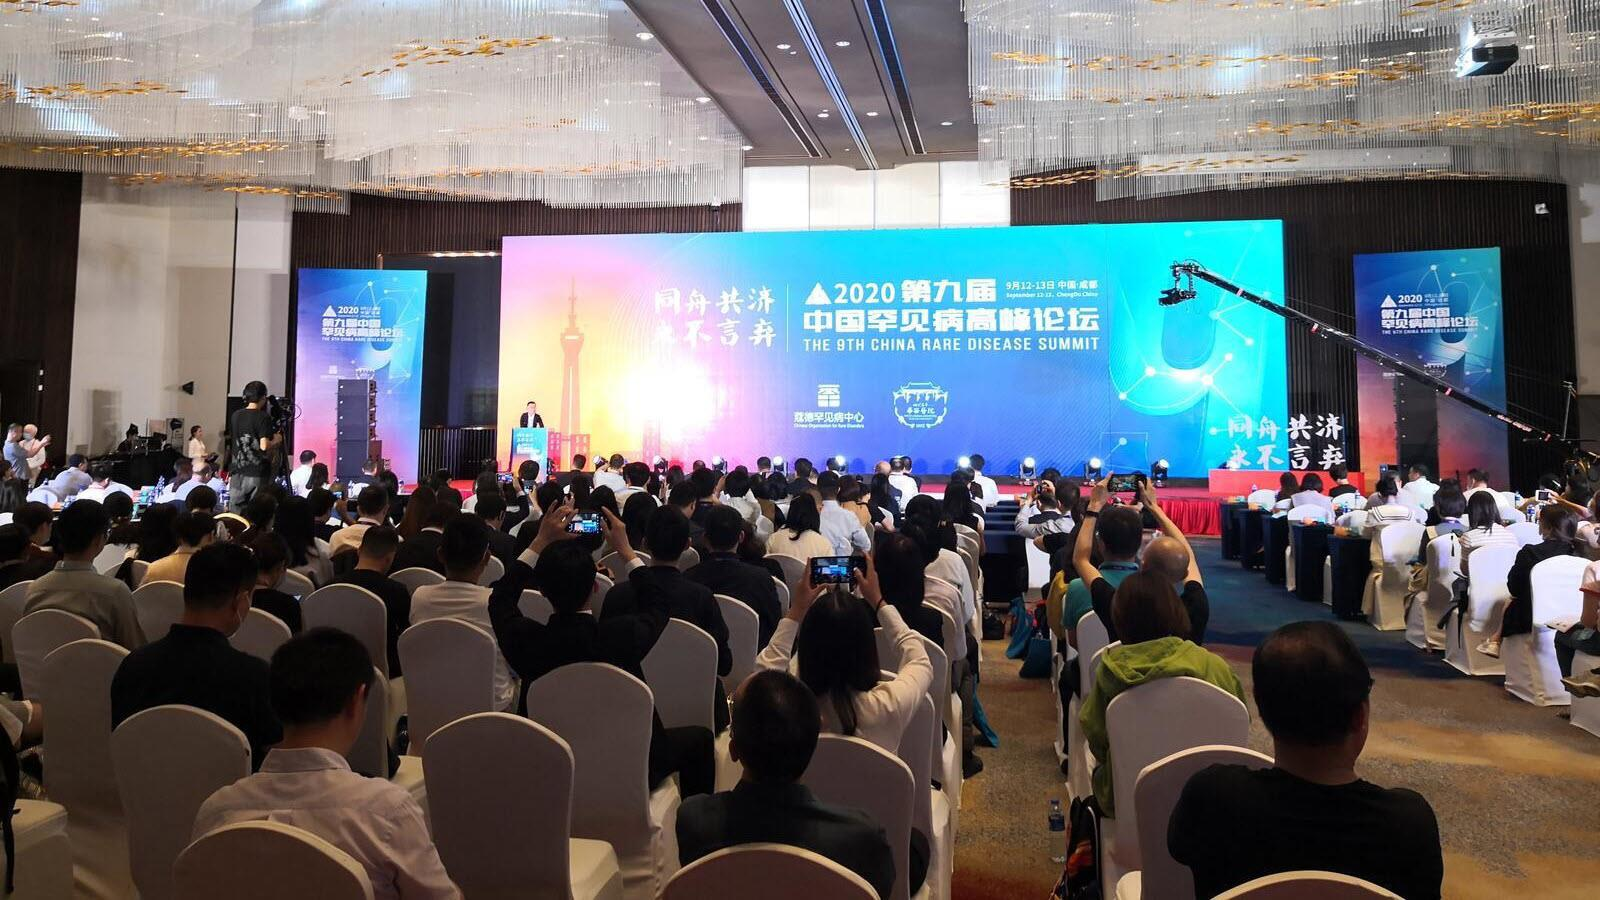 Large audience gathered for Rare Disease Forum in China